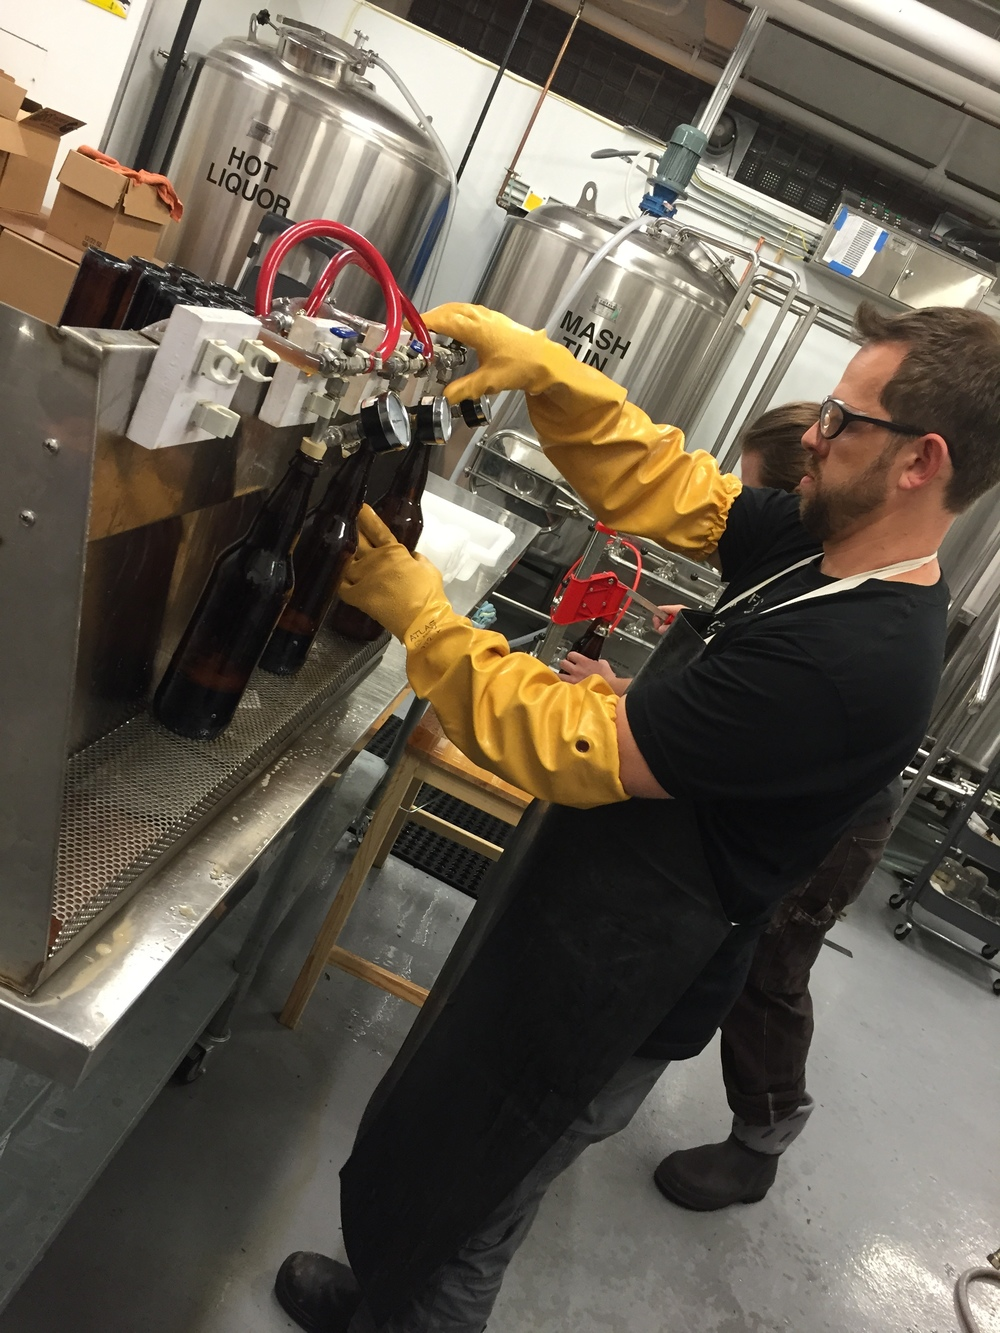 Cesar fills our first bottles (9/15)